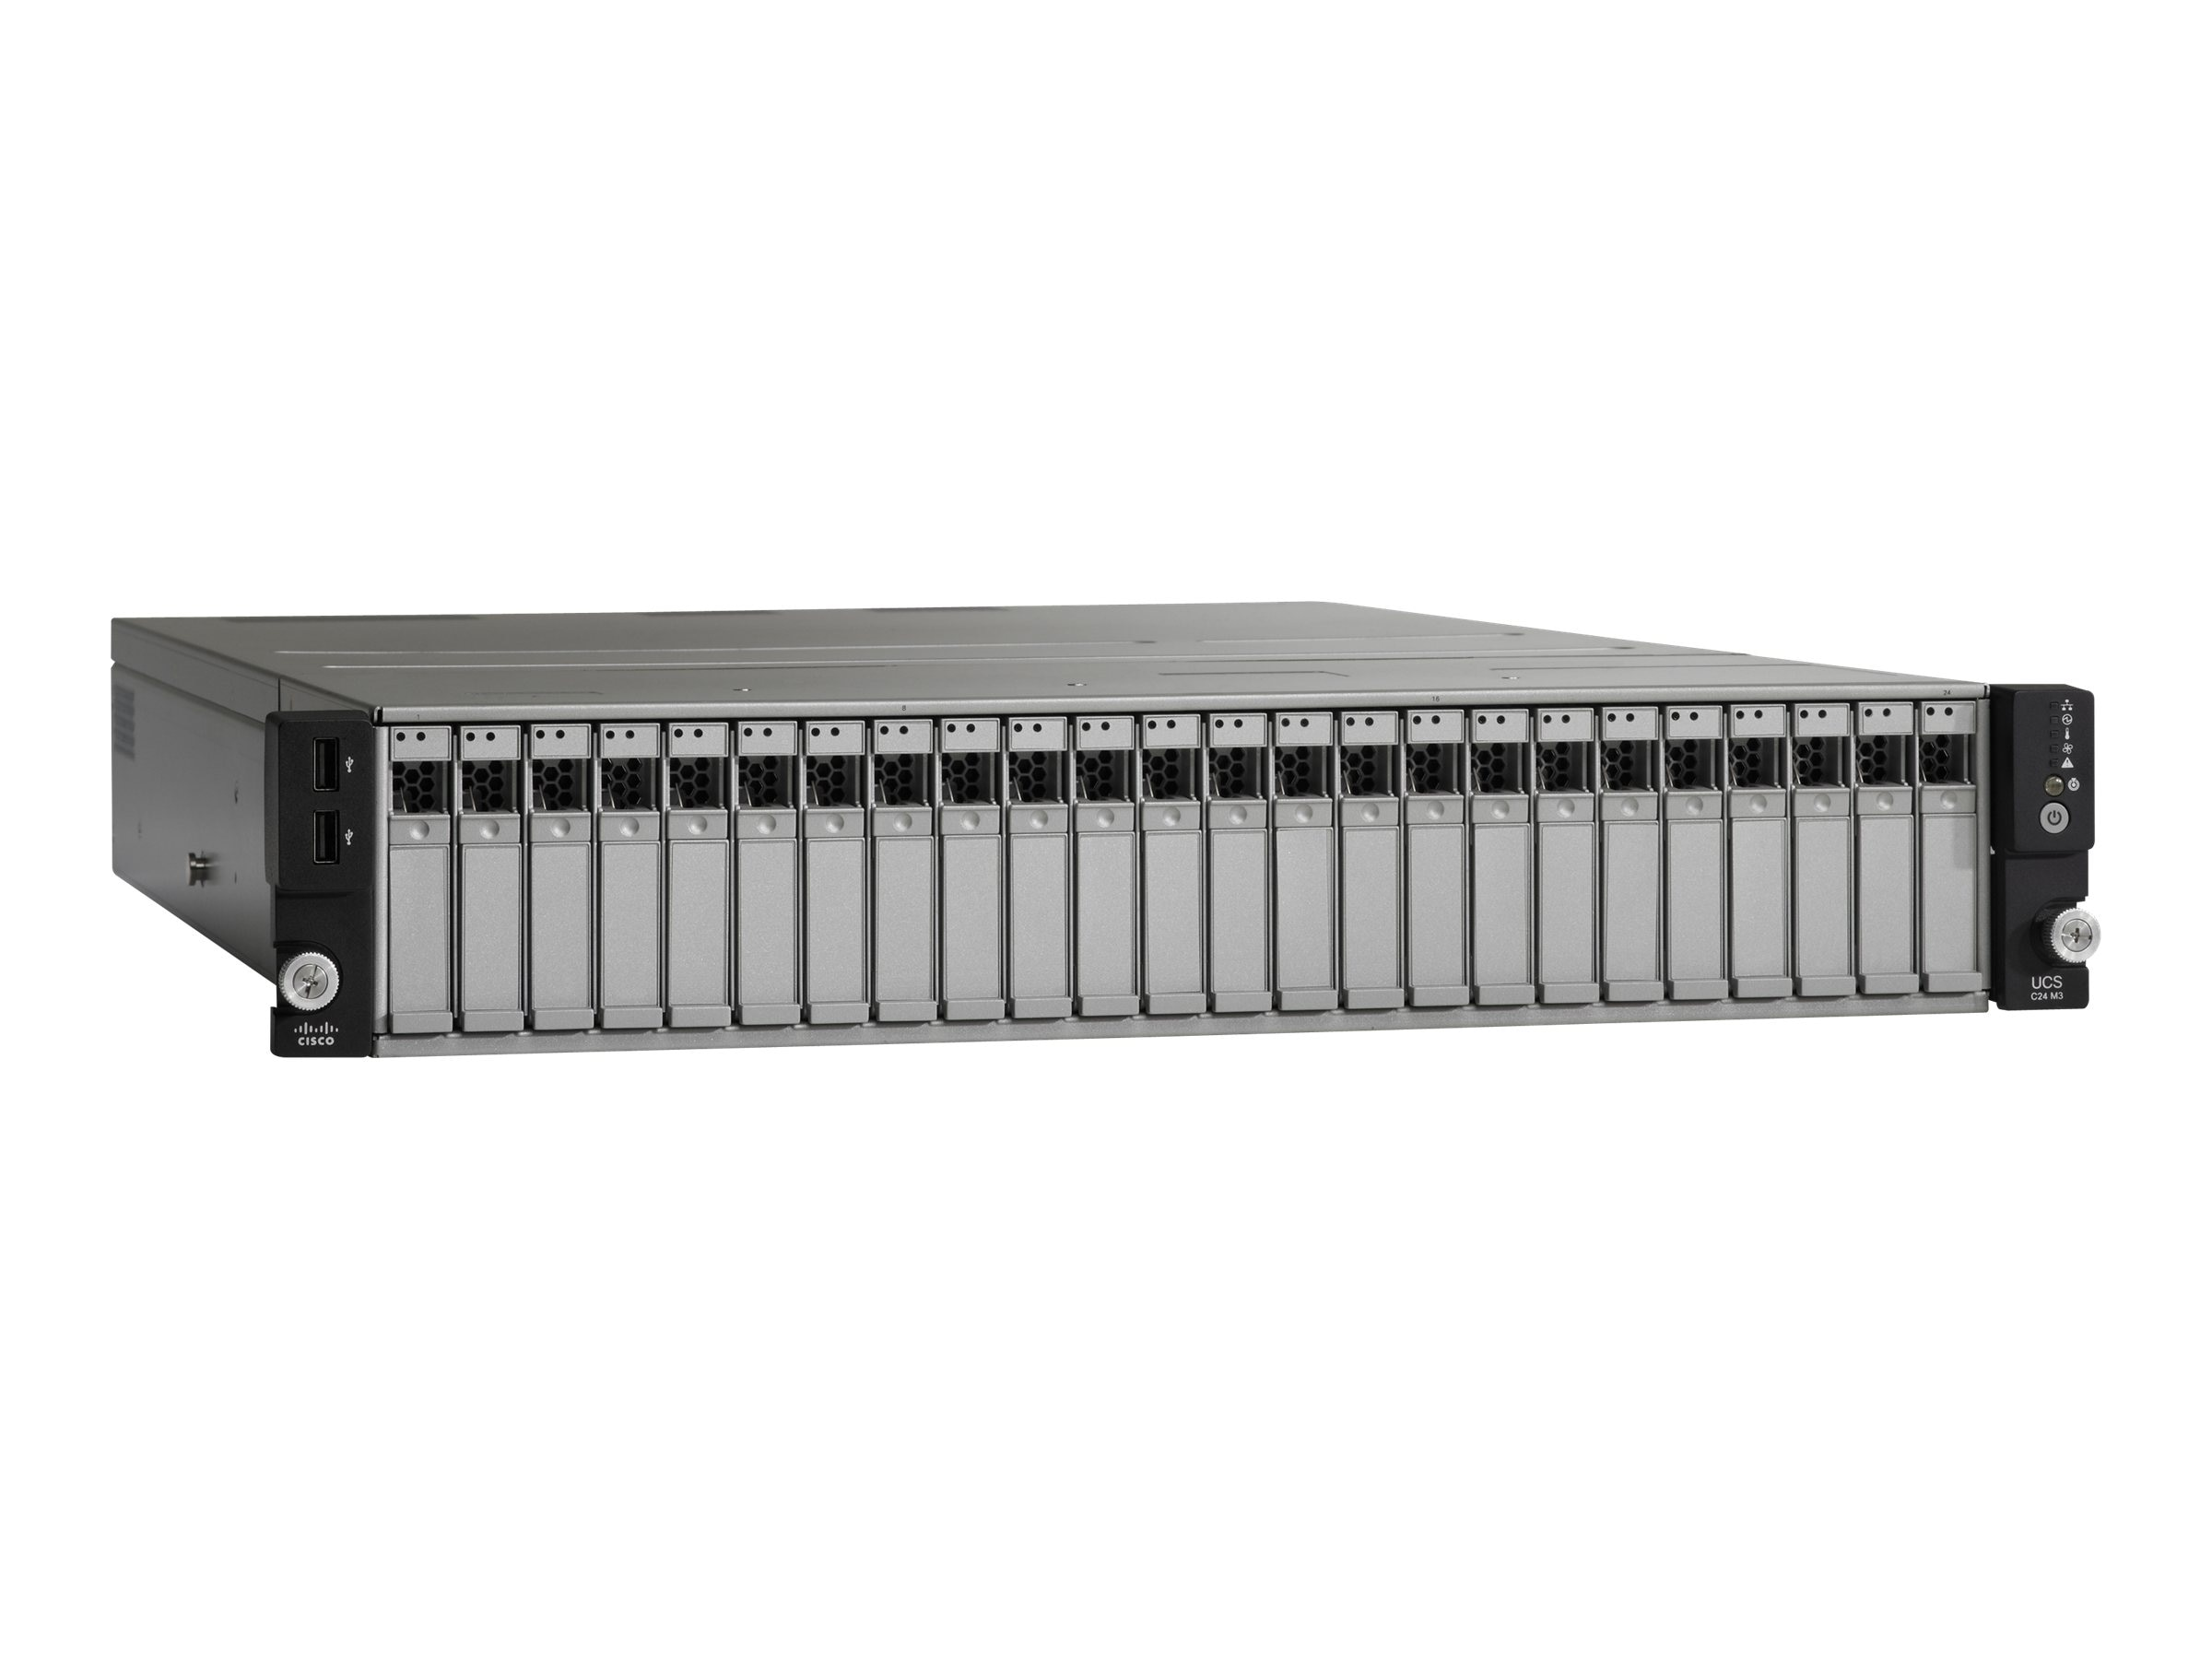 Cisco UCS C24 M3 2U RM (1x) Xeon QC E5-2403 1.8GHz 8GB DDR3 16x2.5 HS Bays 2xGbE Rails USB Flash 2x450W, UCS-SPV-C24-E